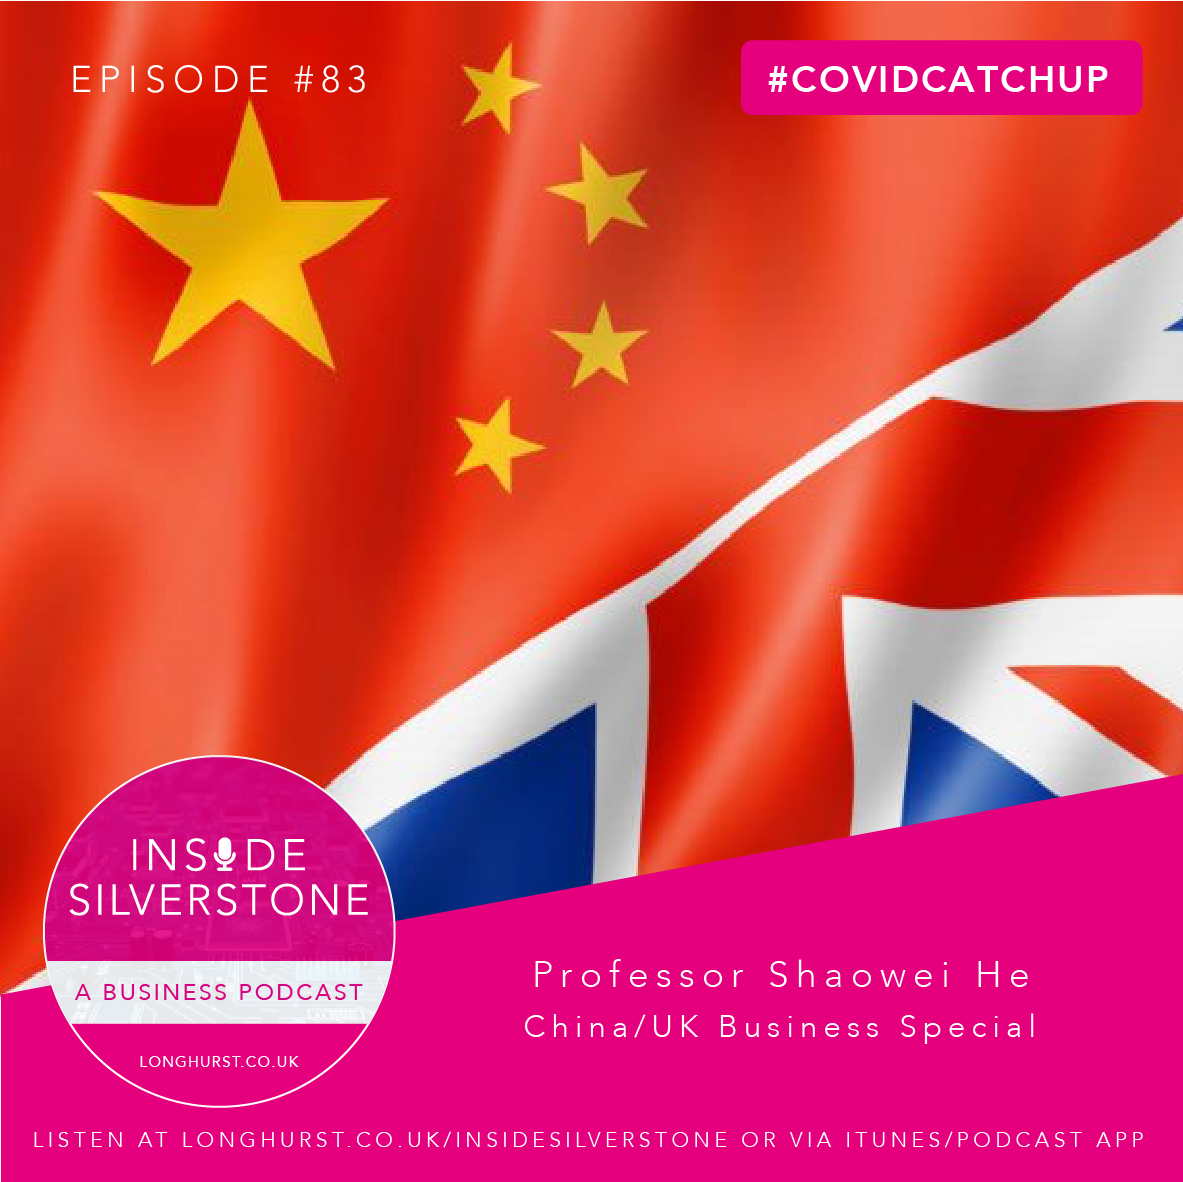 Professor Shaowei He for a China/UK Business Special feature